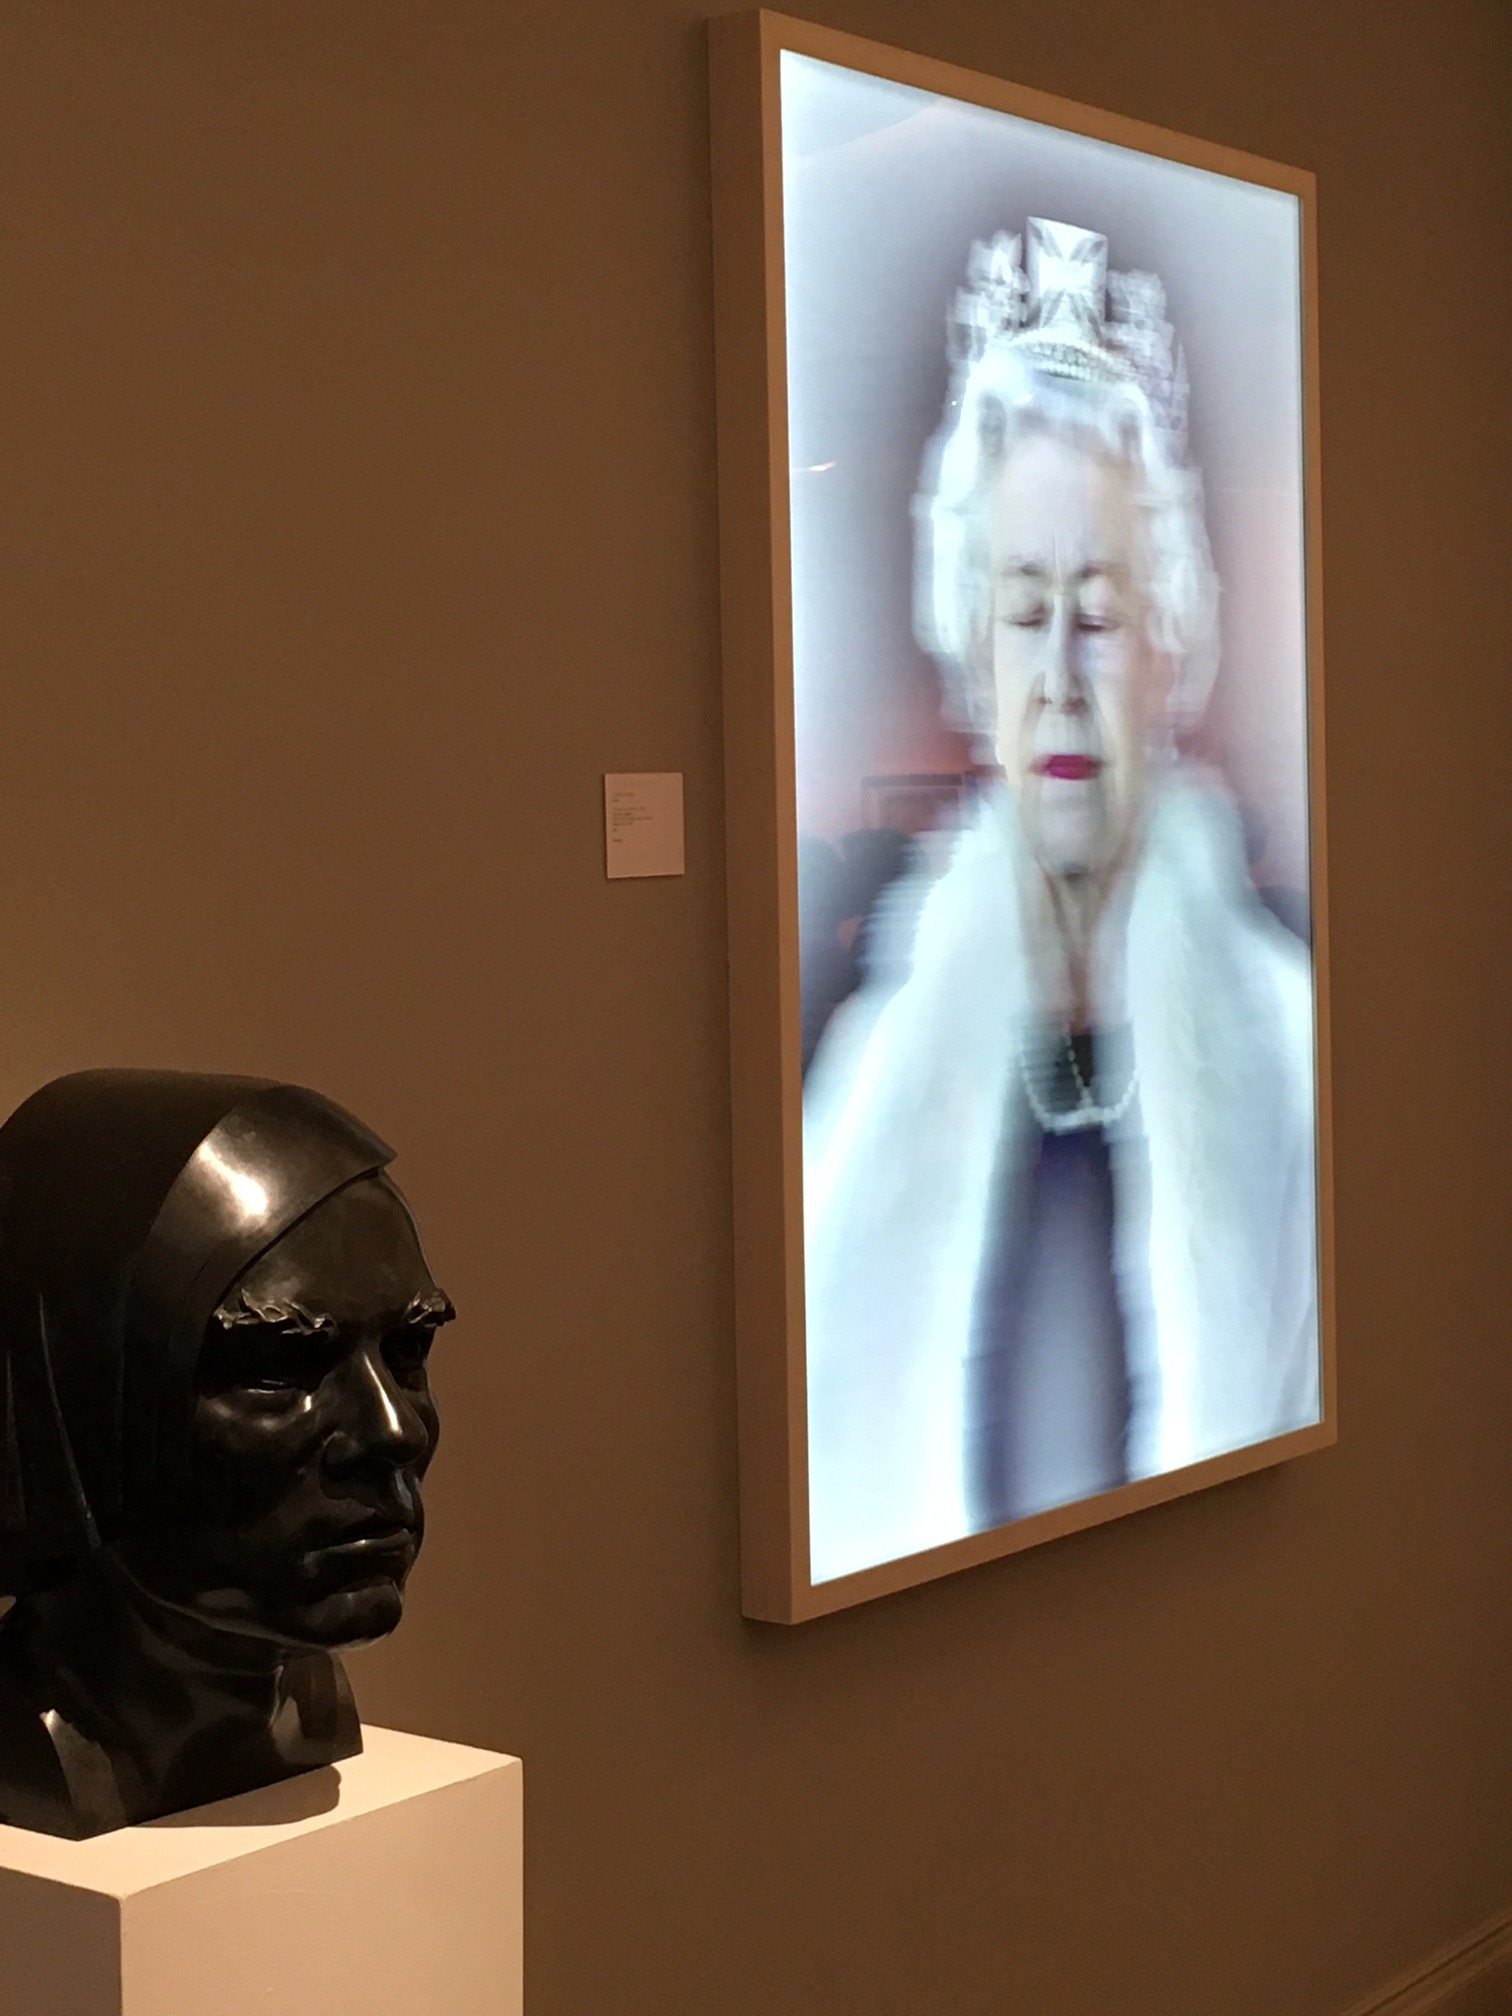 Queen Elizabeth, Lightness of Being Lenitcular Lightbox  Chris Levine, The Fine Art Society, Chris Levine Lenticular lightbox, Lifestyle Blog Lieblingsstil, Lifestyleblog,